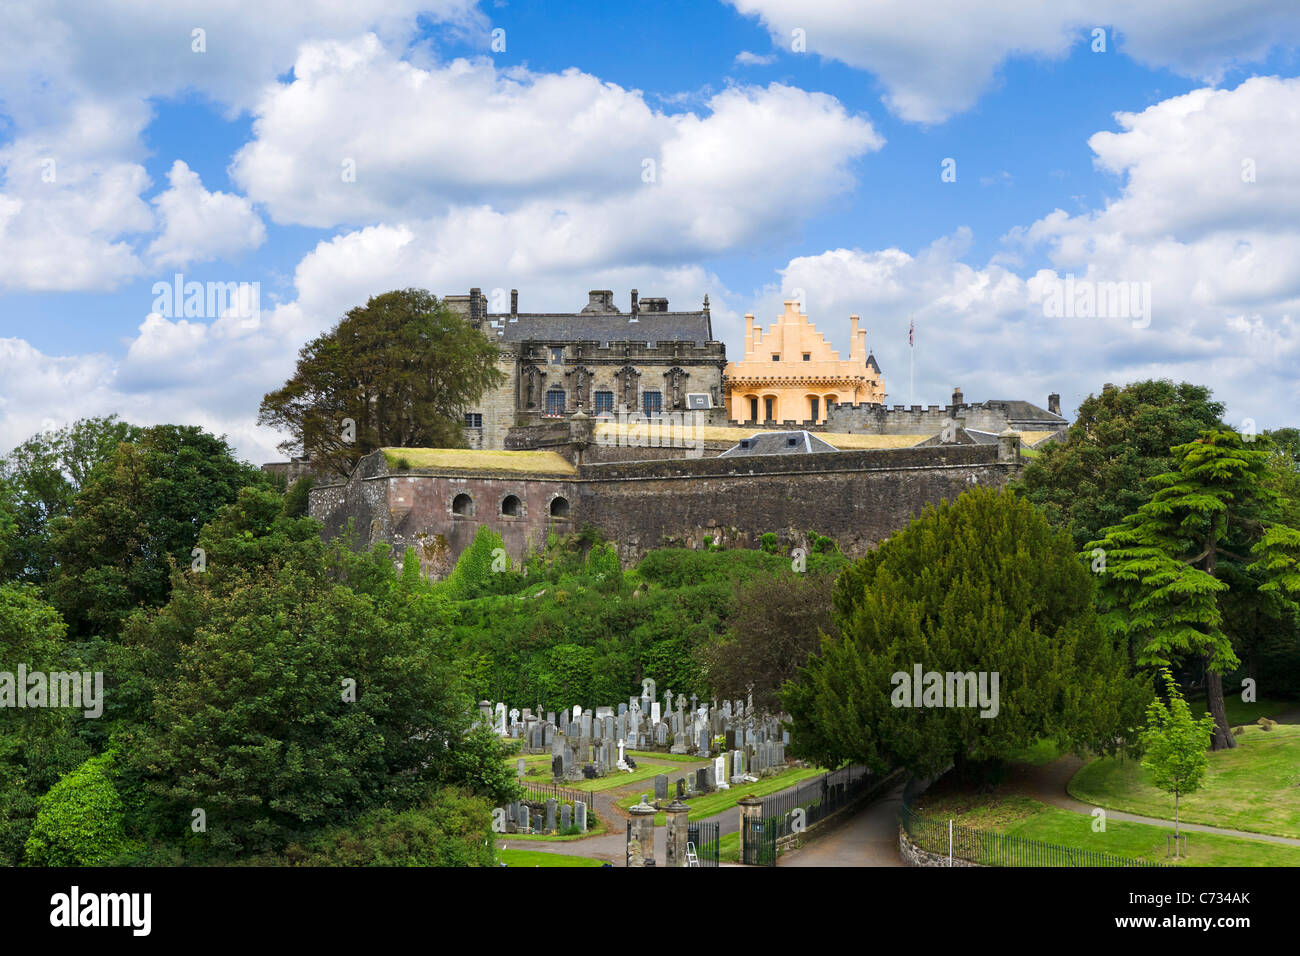 Stirling Castle viewed from the Church of the Holy Rude, showing the controversially painted Great Hall, Stirling, - Stock Image